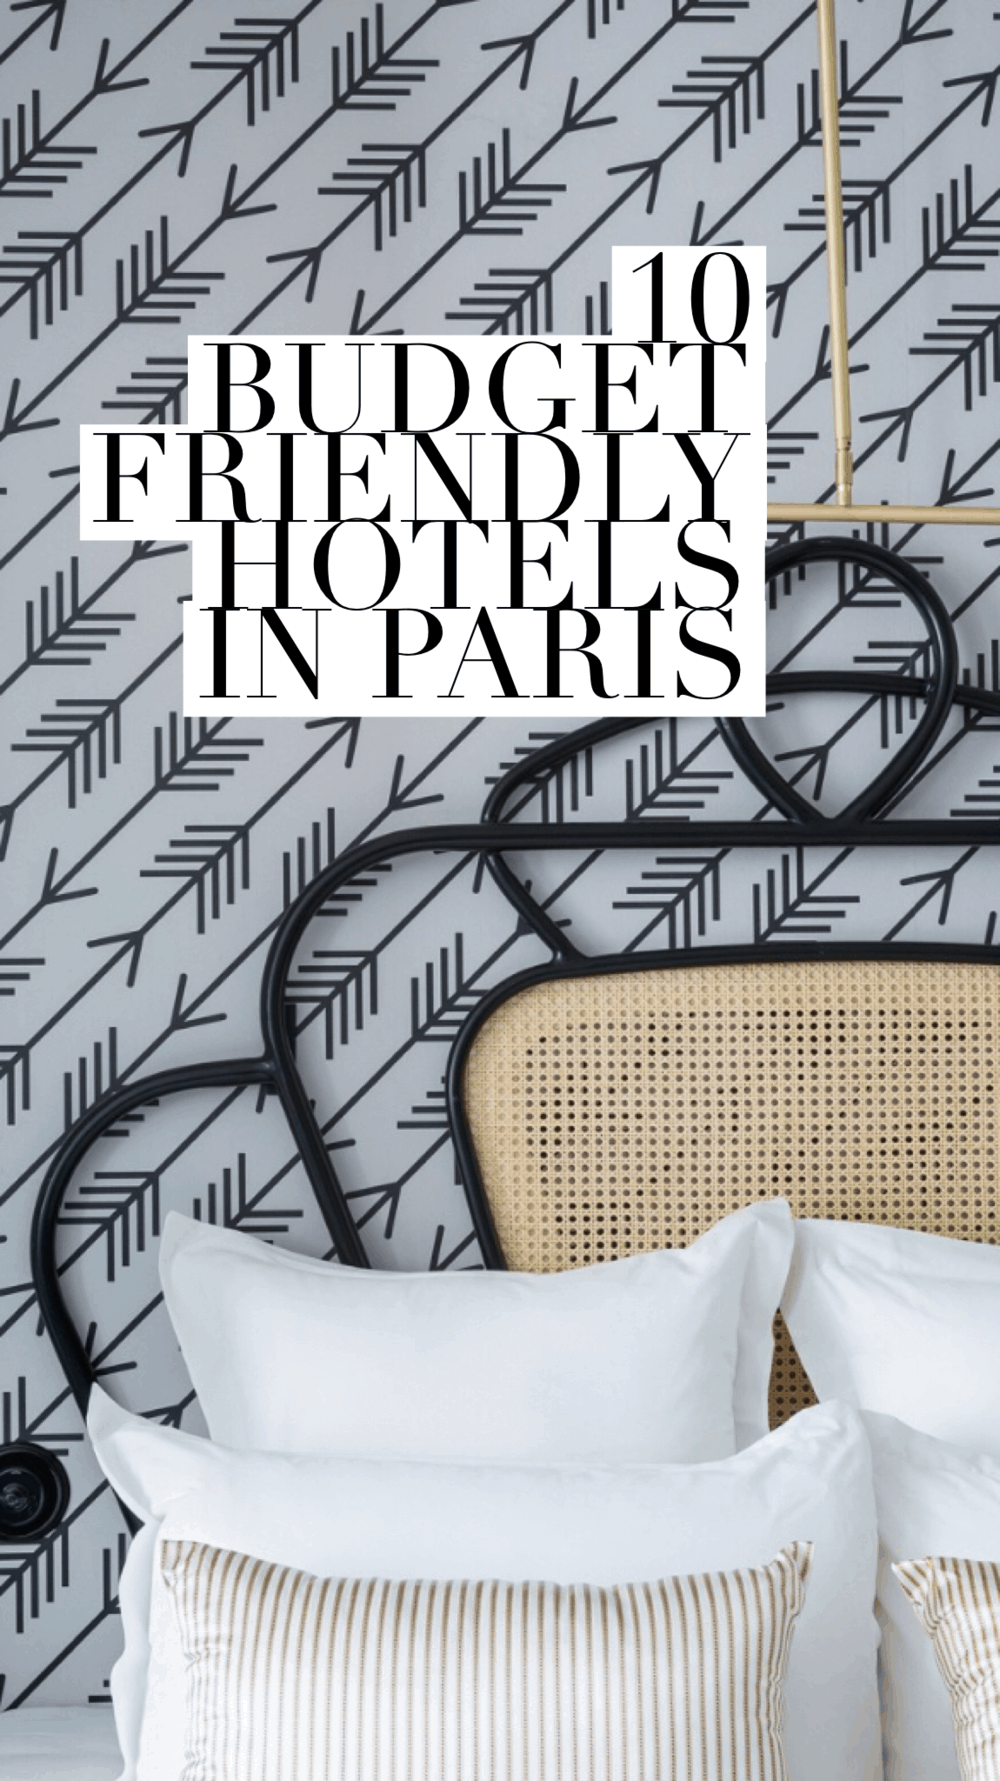 10 Budget Friendly Hotels for Paris France by Every Day Parisian